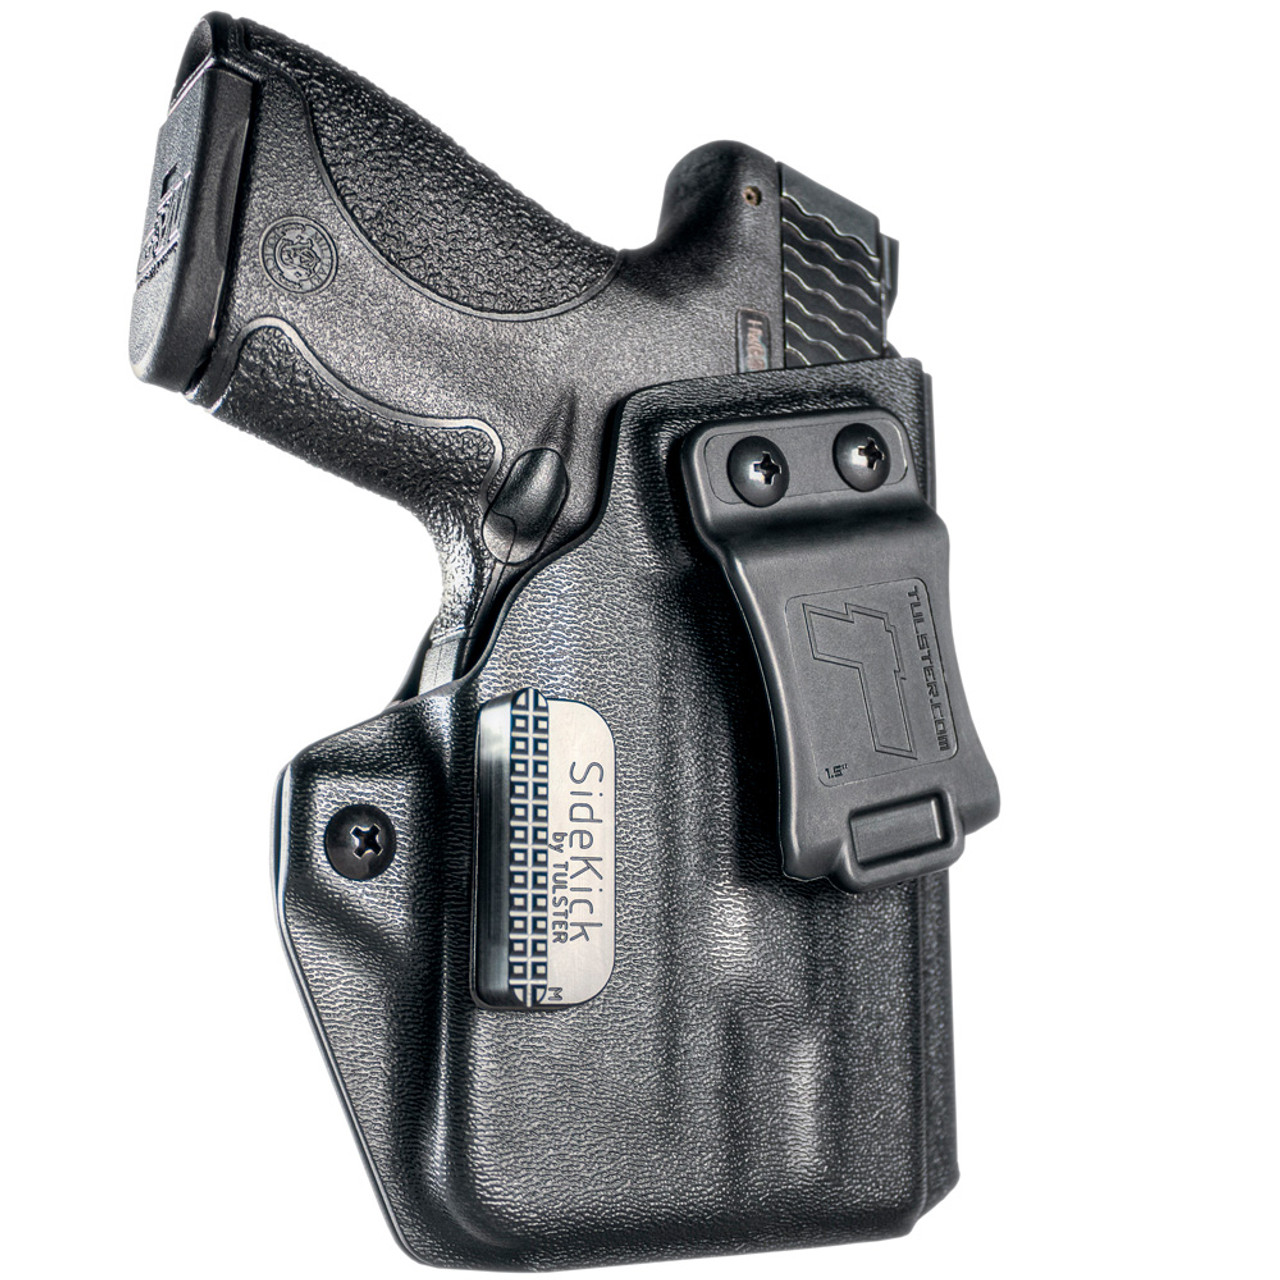 Tulster SideKick - Profile Holster